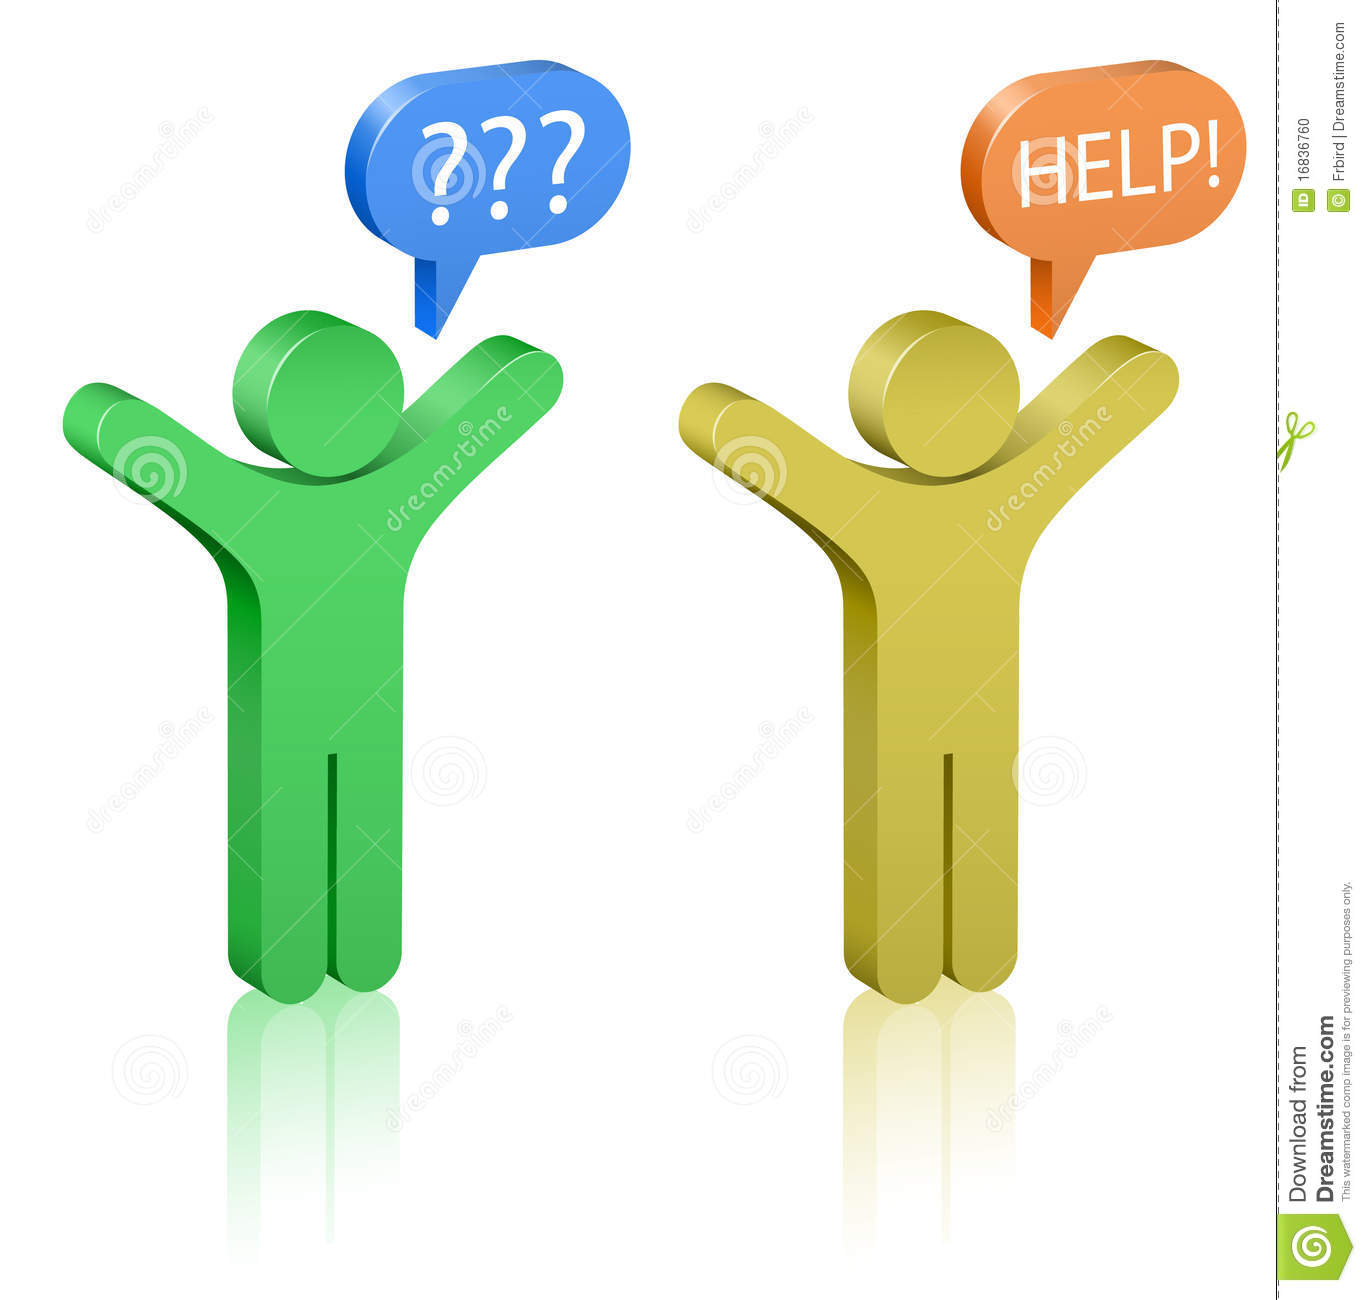 Call For Help Clipart.